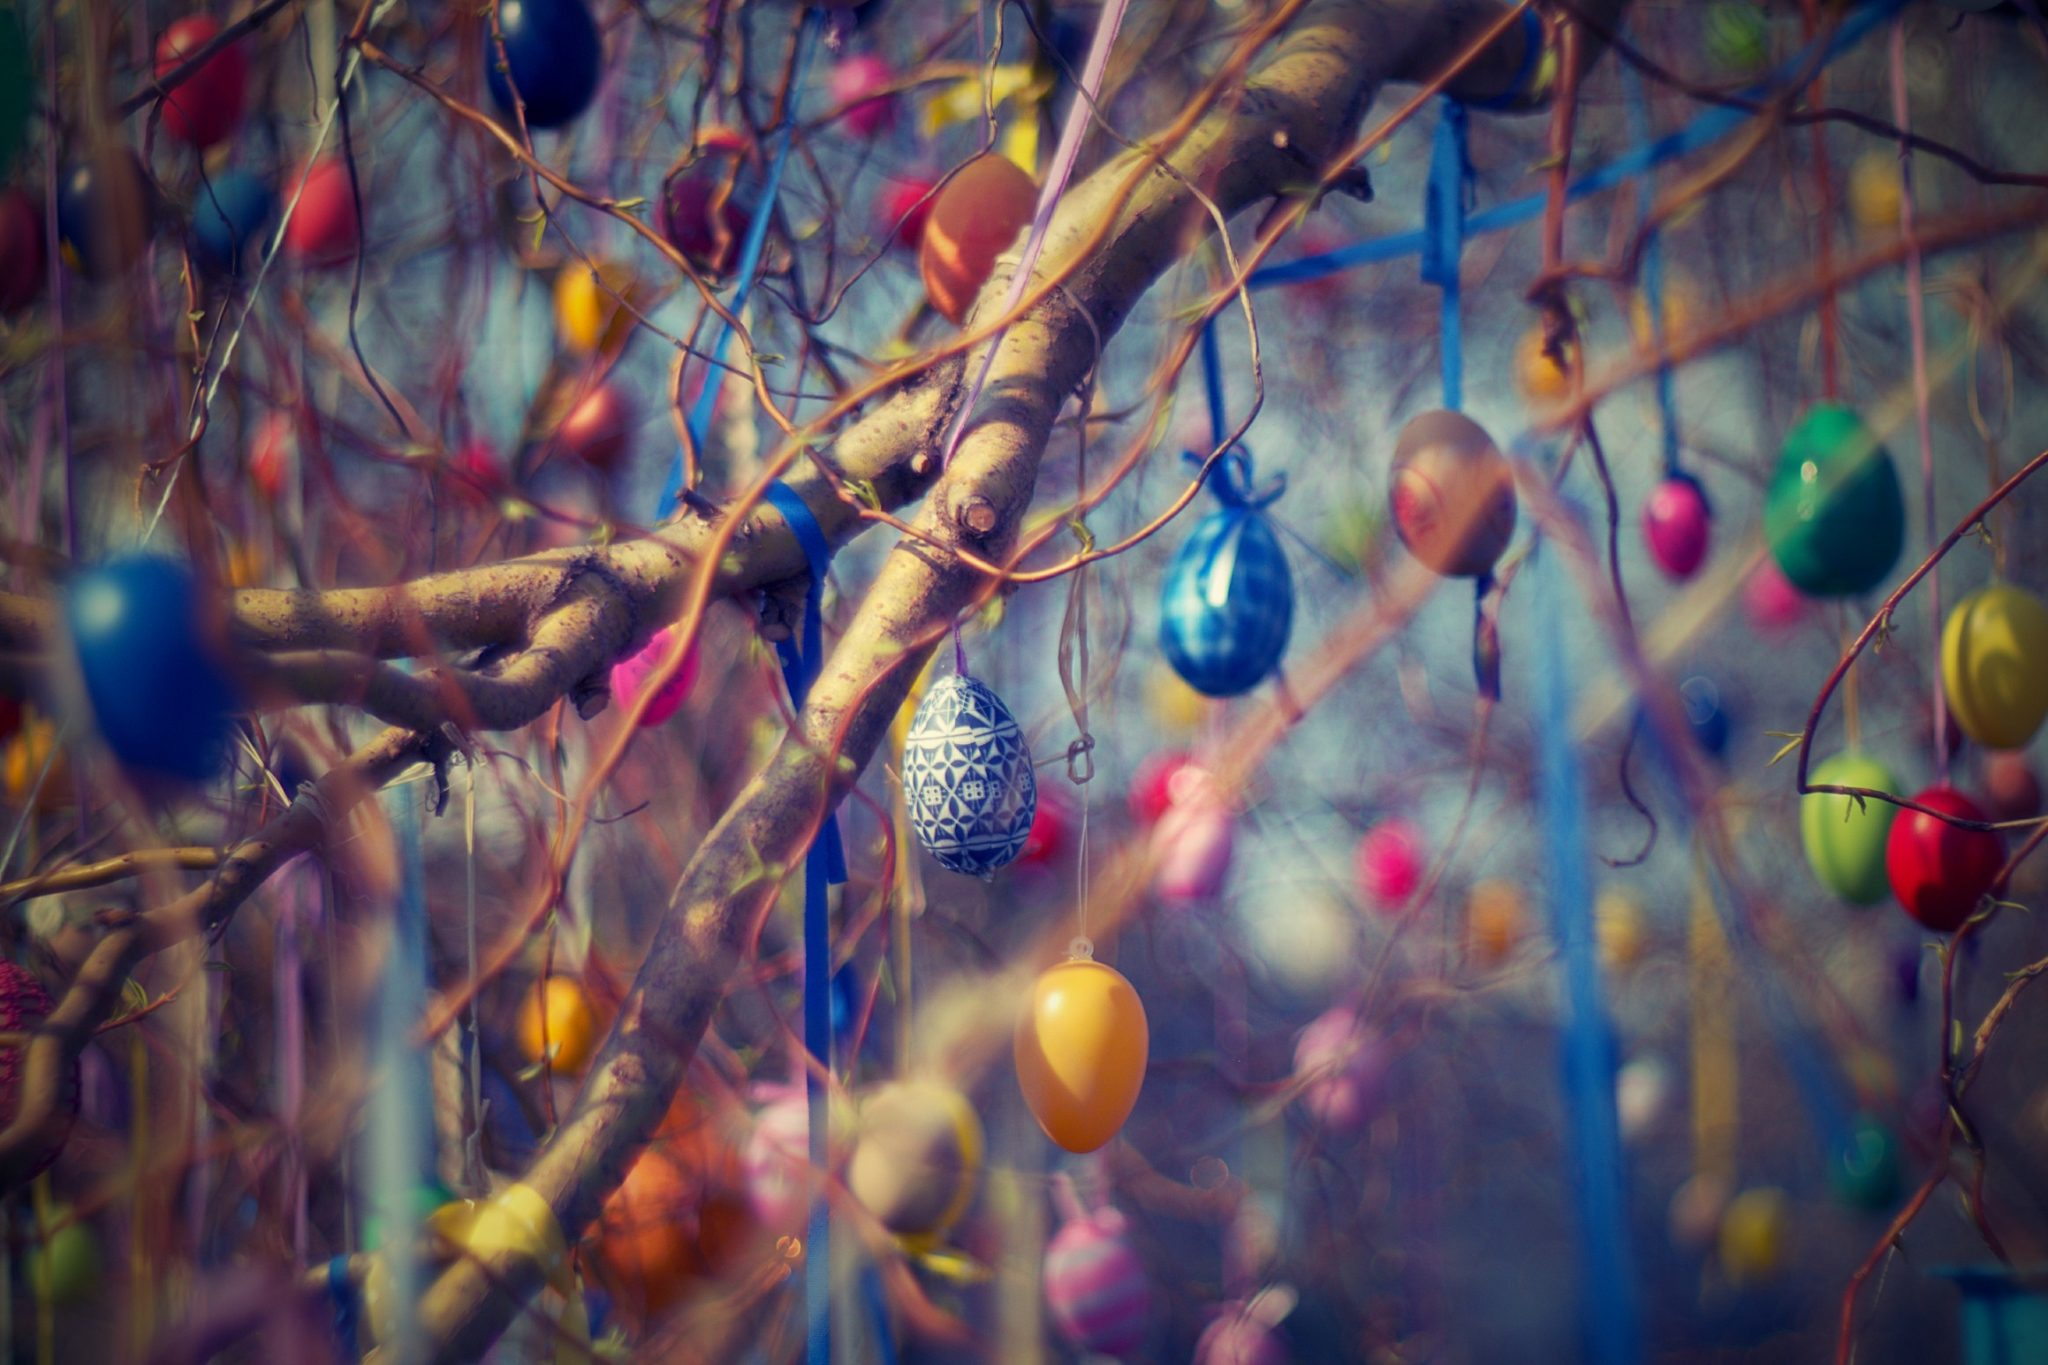 Easter eggs hanging from trees